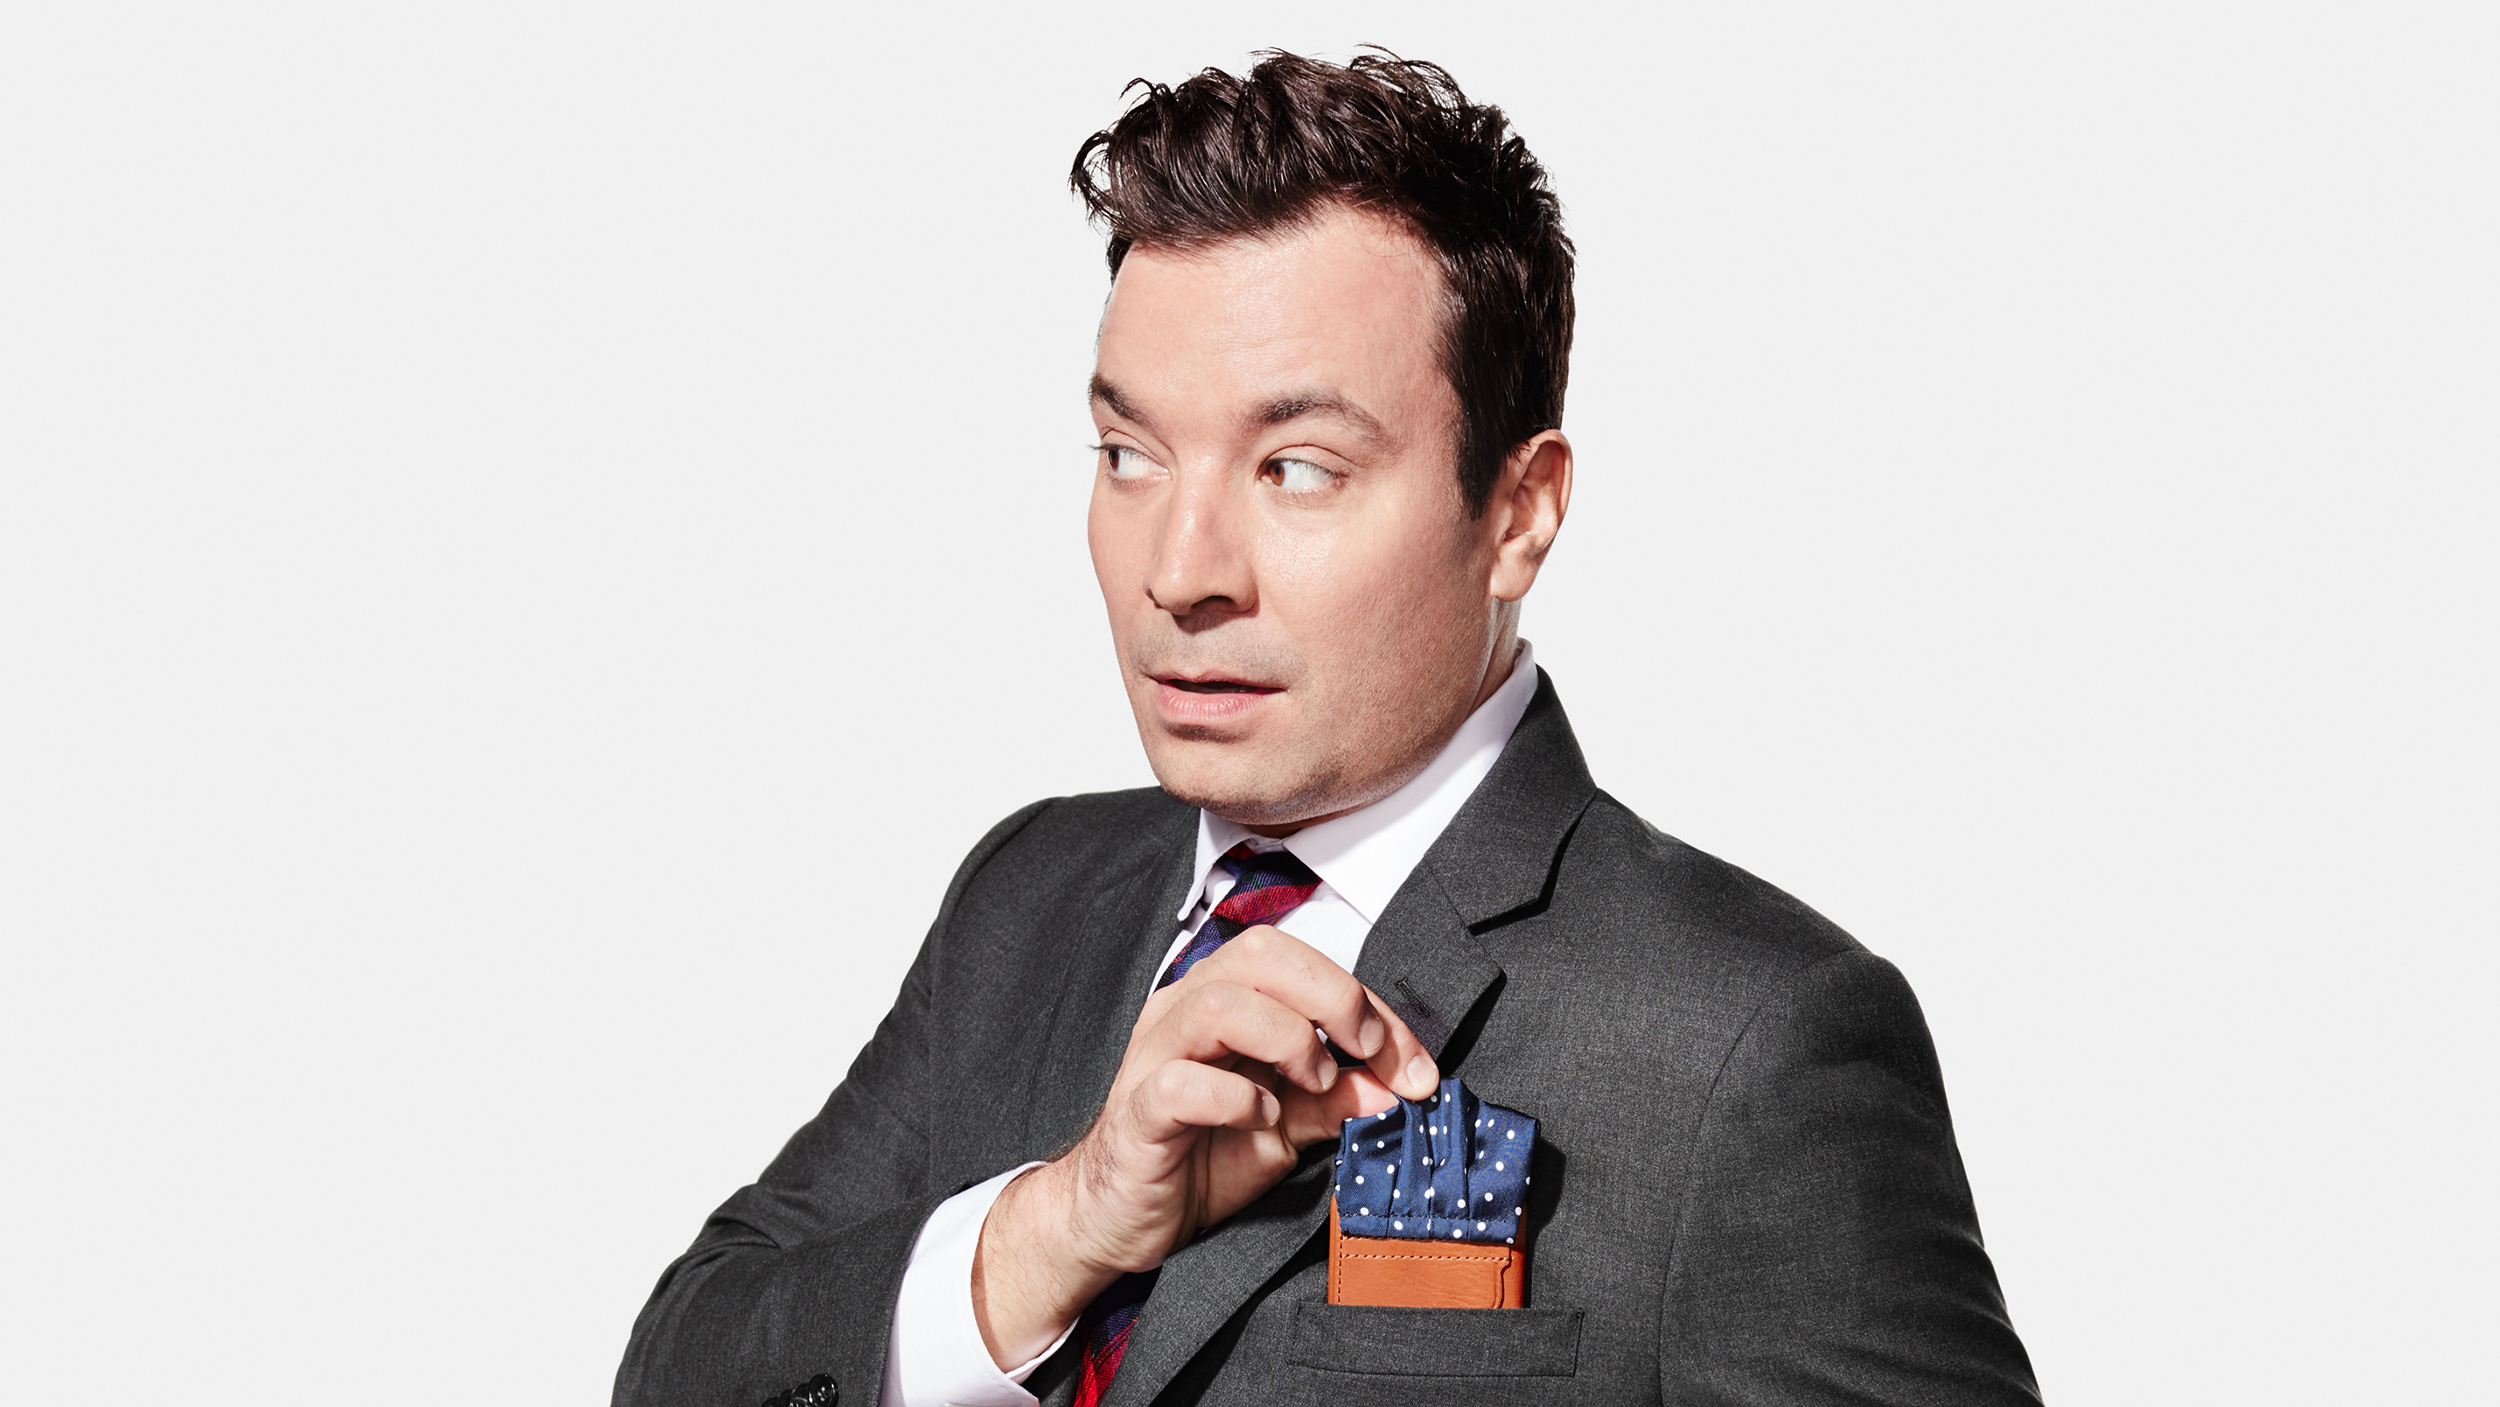 Jimmy Fallon Hd Desktop